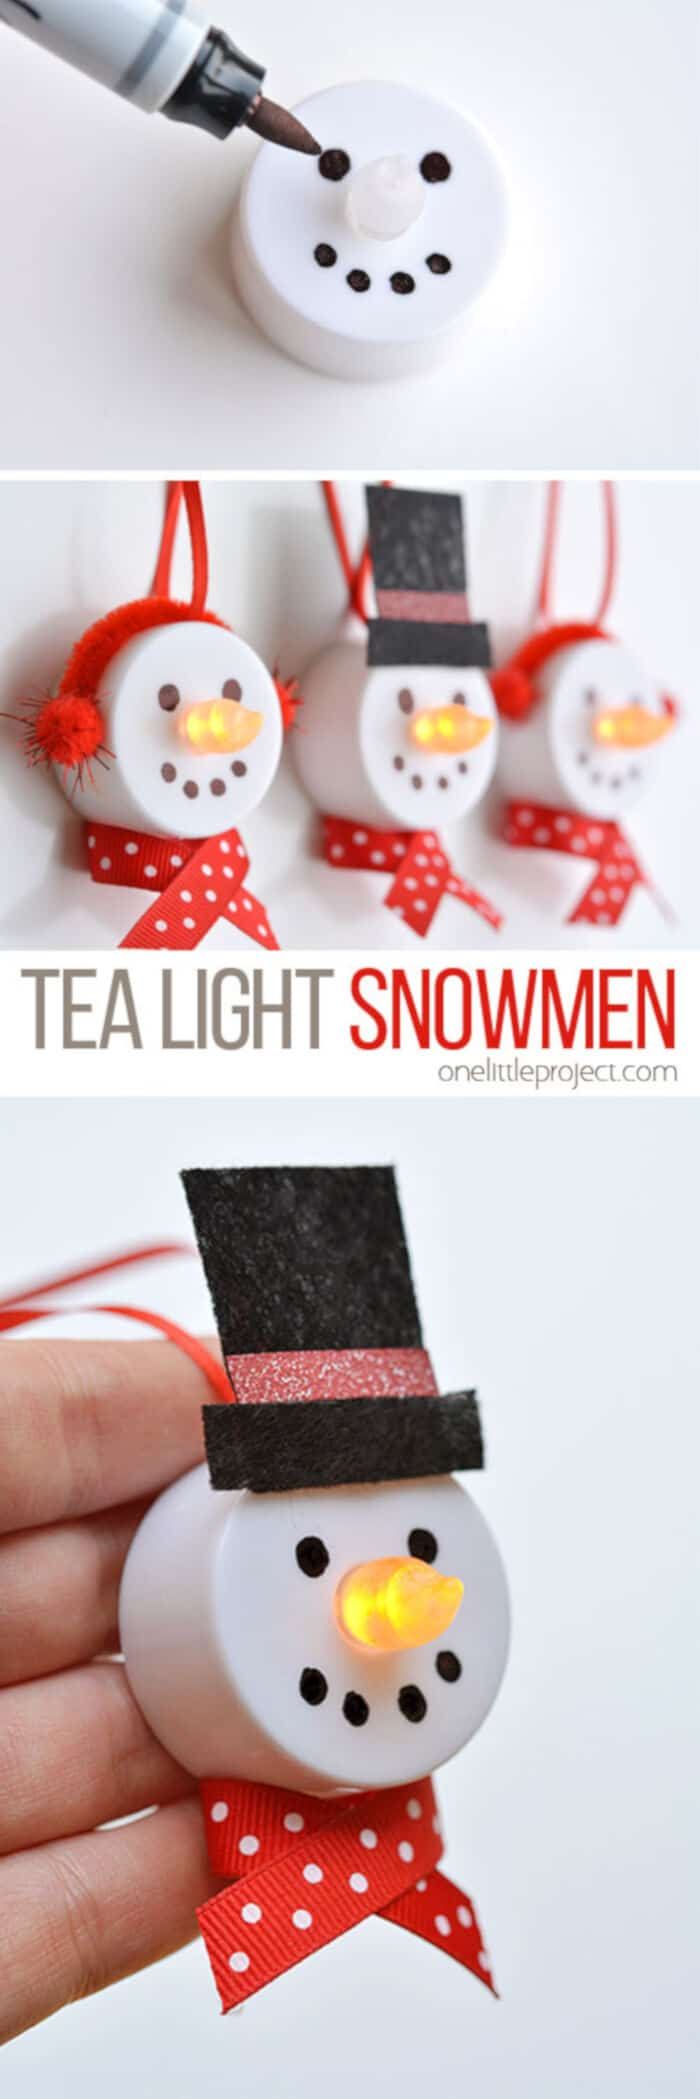 Tea Light Snowman Ornaments by One Little Project